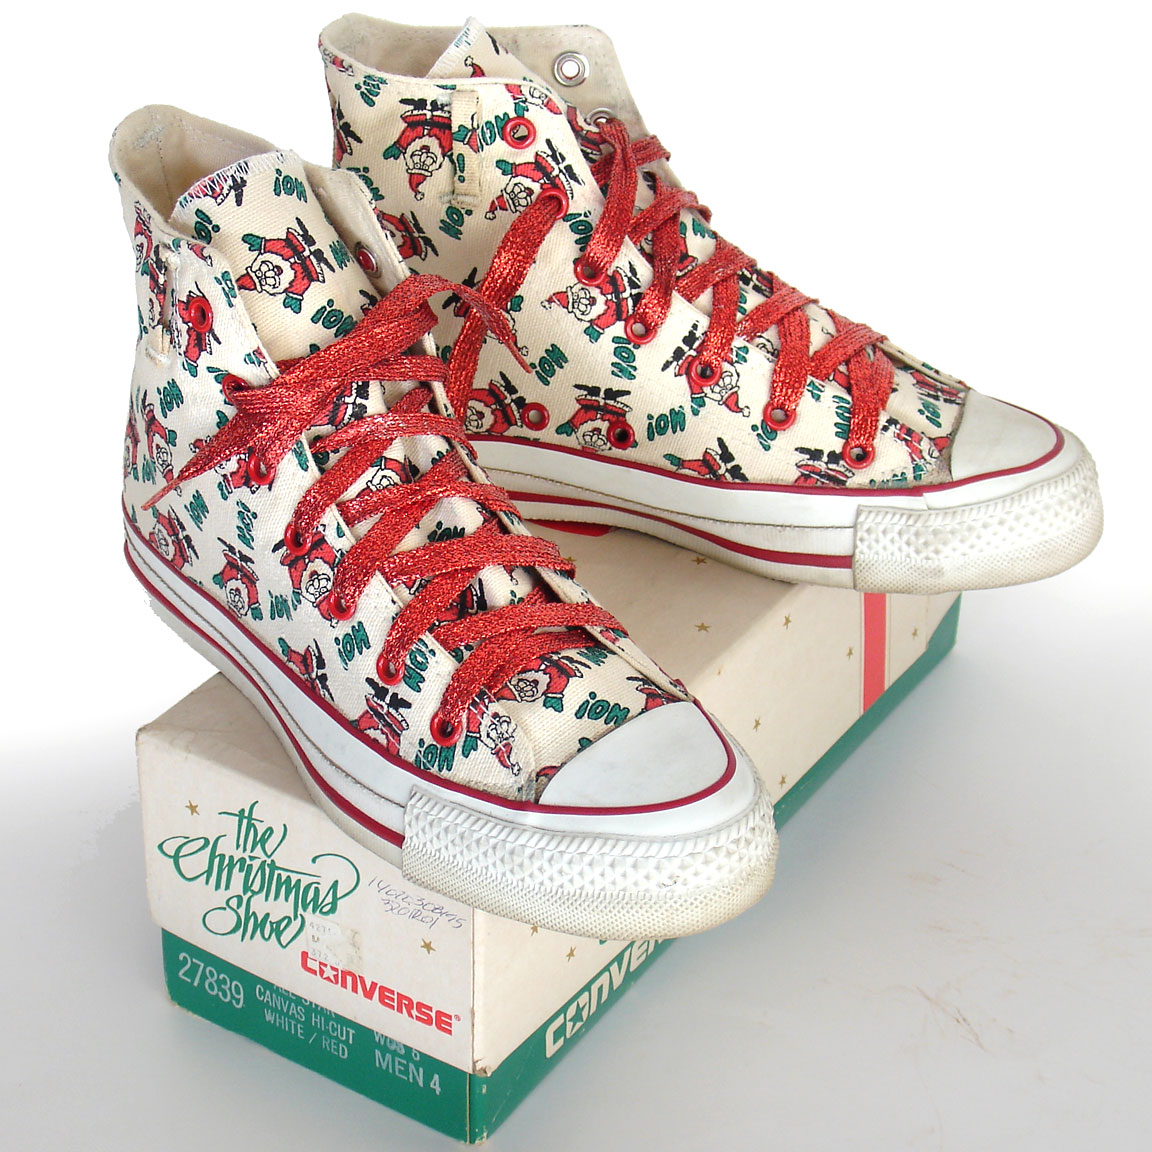 2e7241c9834 Vintage American-made Converse All Star Chuck Taylor Christmas shoes for  sale at http